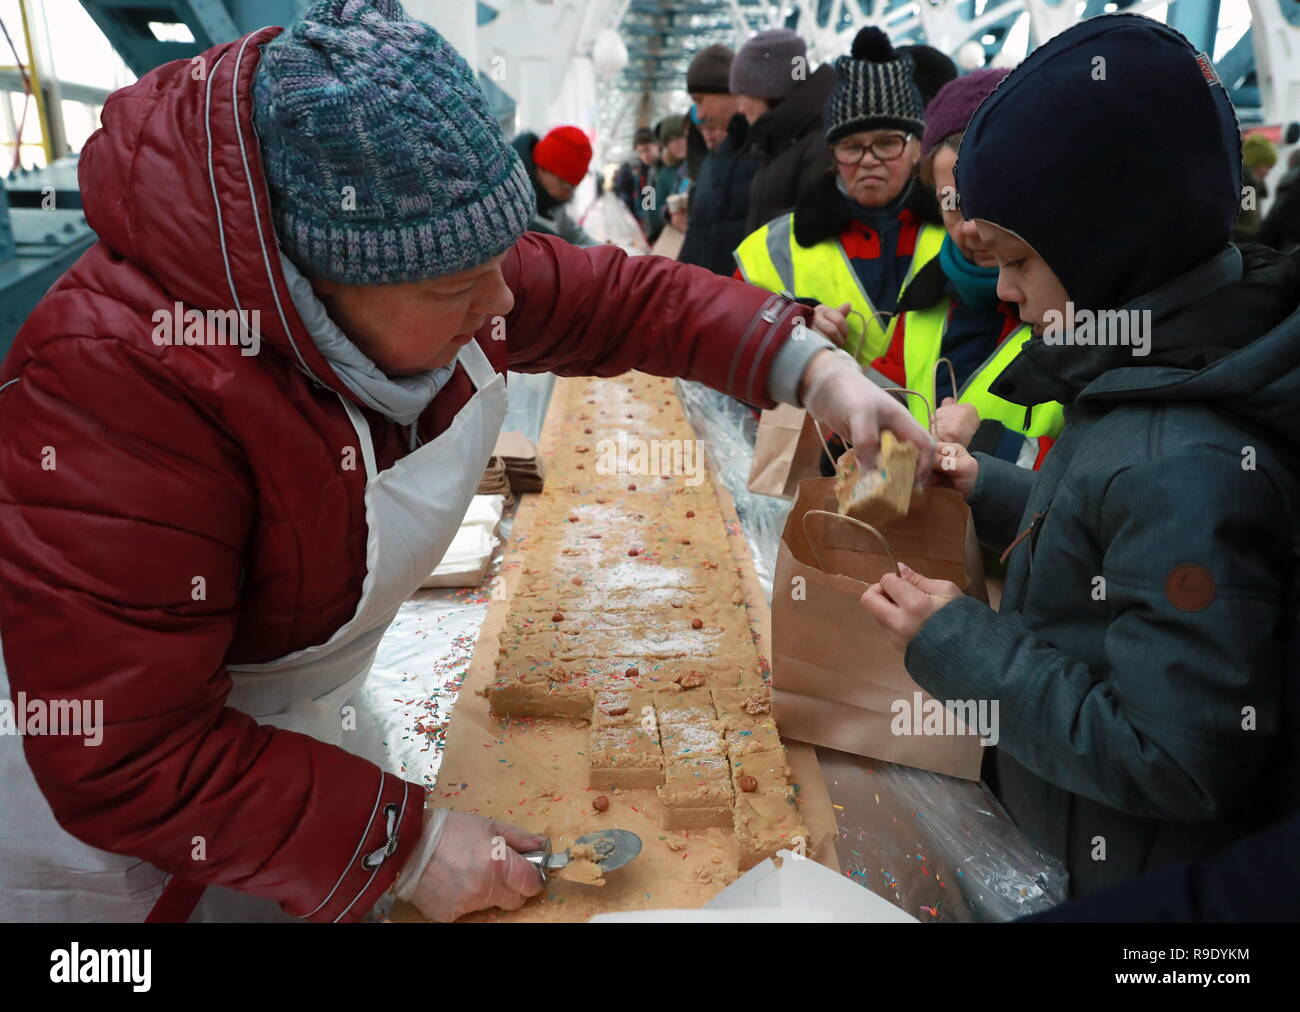 Moscow, Russia. 23rd Dec, 2018.  Halva prepared by cooks from the 7 North Caucasus regions on the Bogdan Khmelnitsky Bridge. The 65.5-metre long confection weighing 570 kg has entered the Russian Book of Records as the largest.  Credit: ITAR-TASS News Agency/Alamy Live News - Stock Image